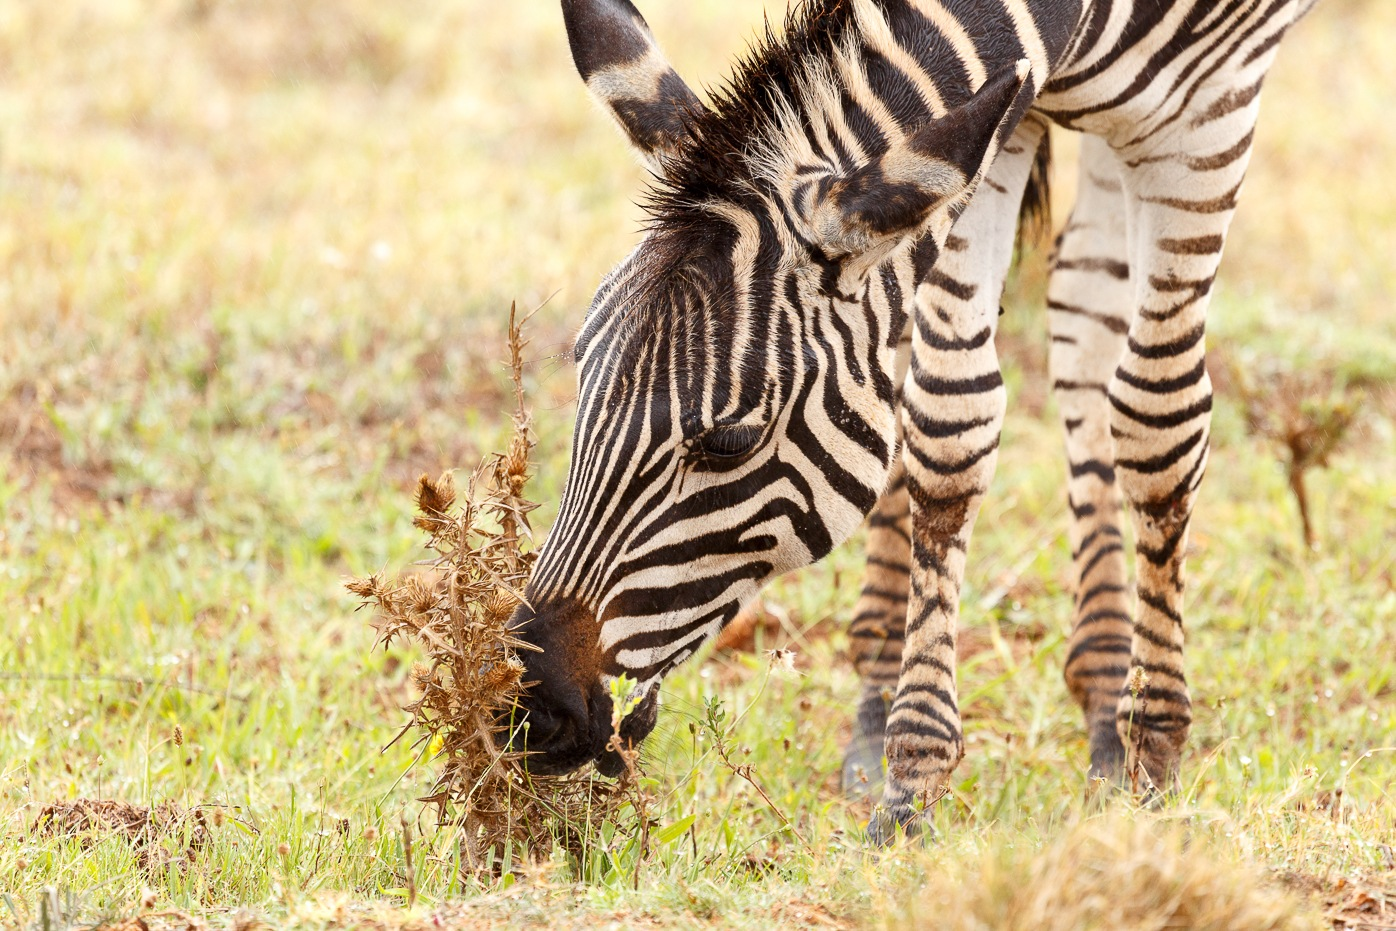 Zebras bending down to eat a dry flower by Charissa de Scande Lotter